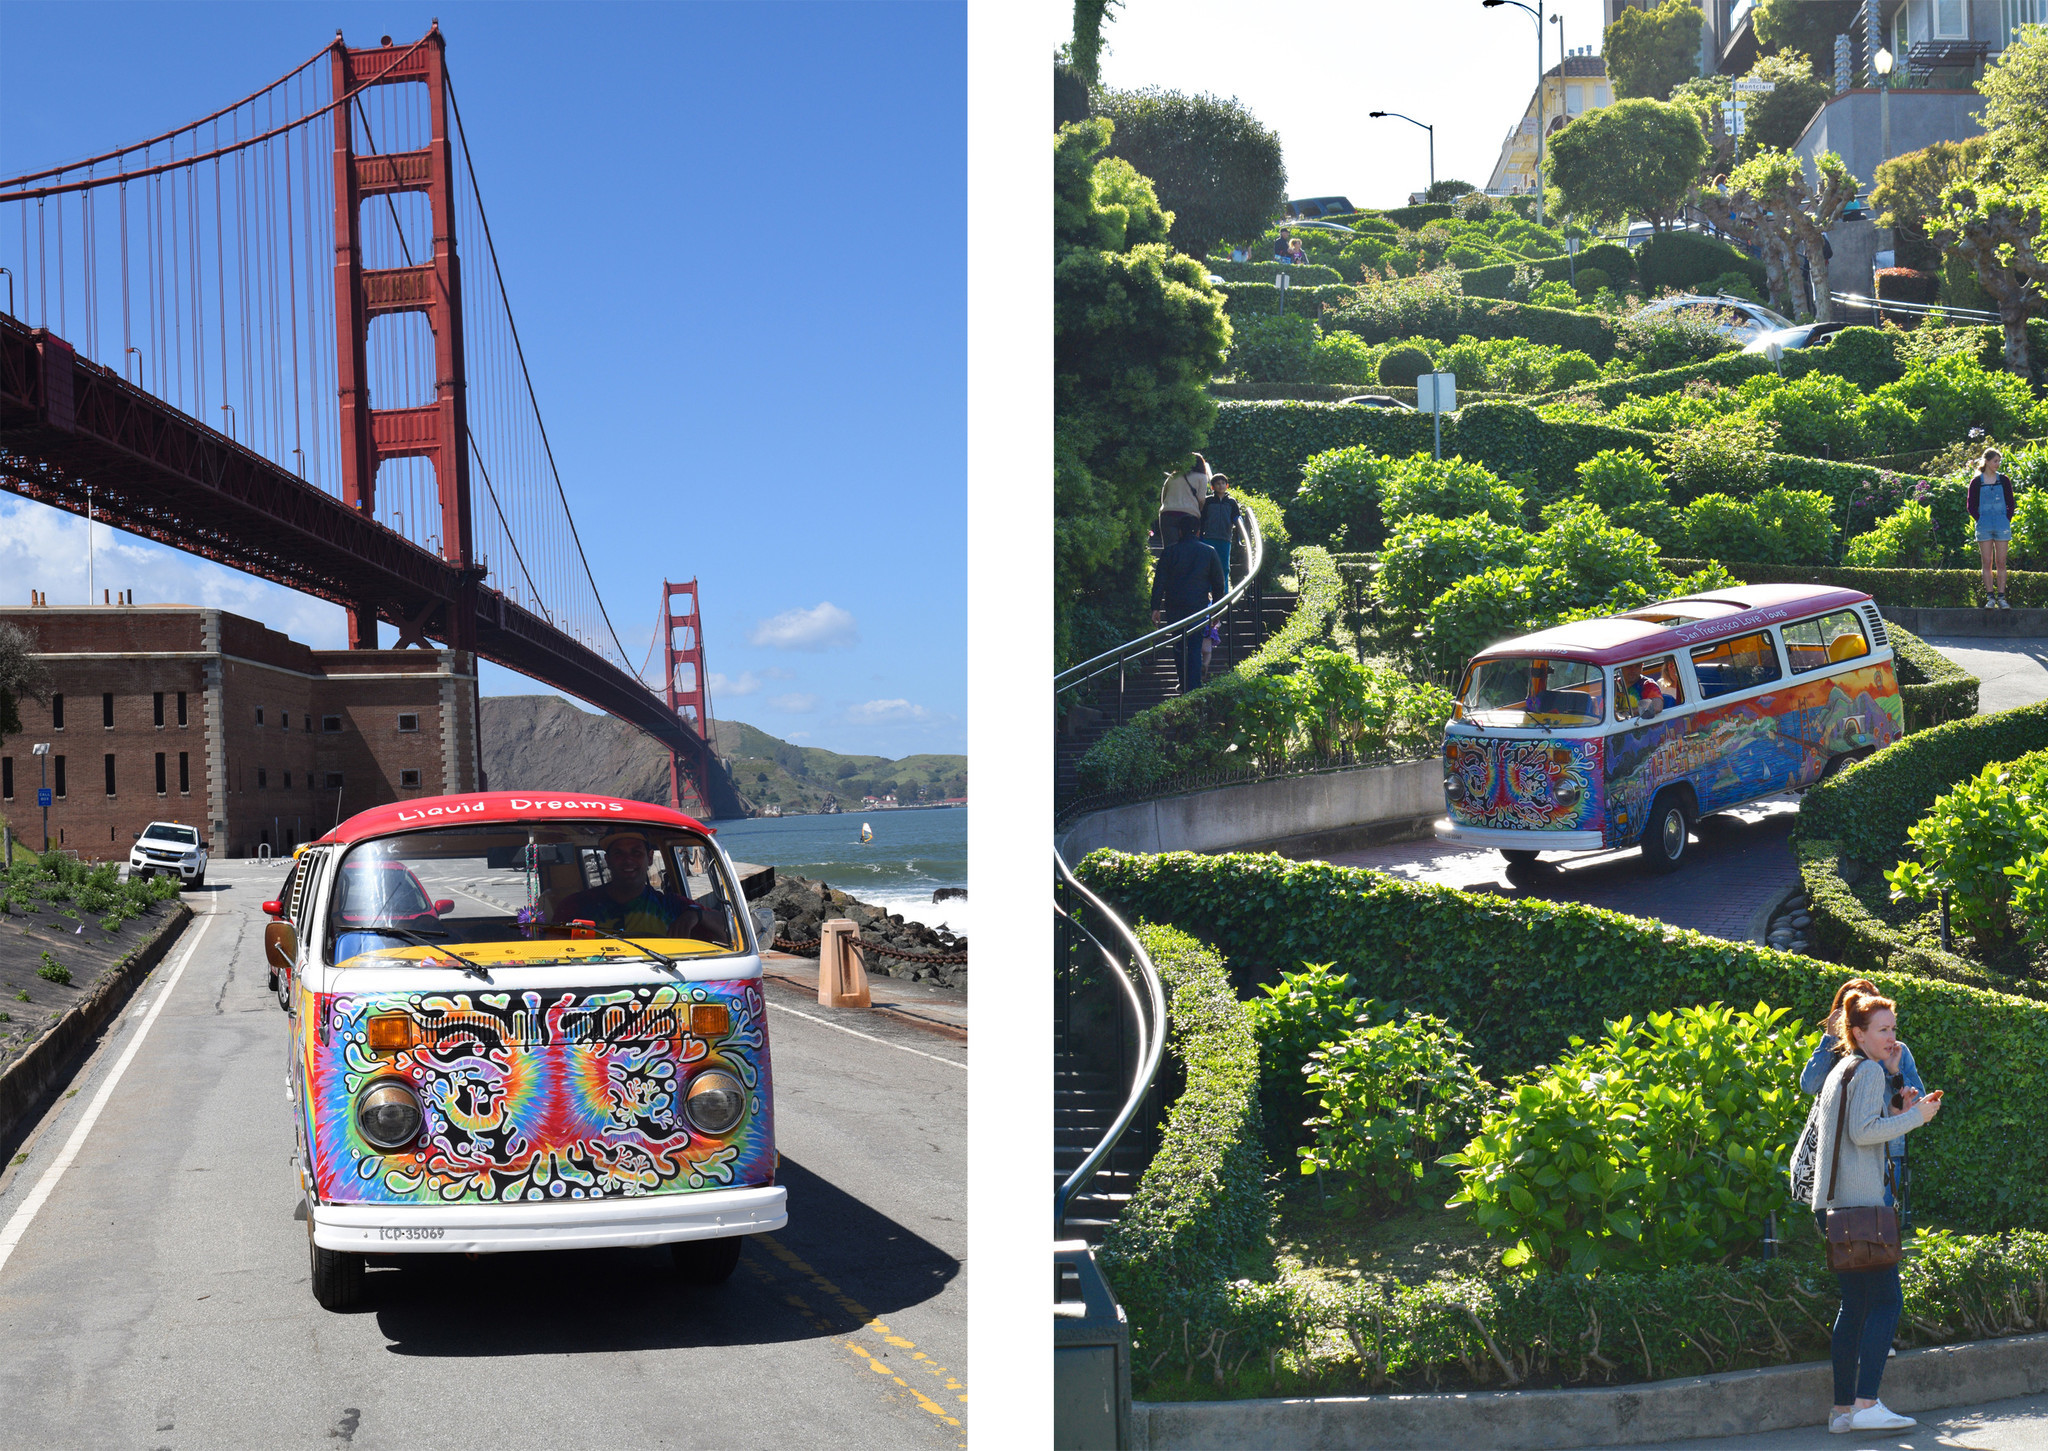 The brilliantly painted VW van of San Francisco Love Tours makes a stop at the Golden Gate Bridge, left, and makes its way down iconic Lombard Street, right. The tour, run by Allan Graves, covers locales important to the Summer of Love.